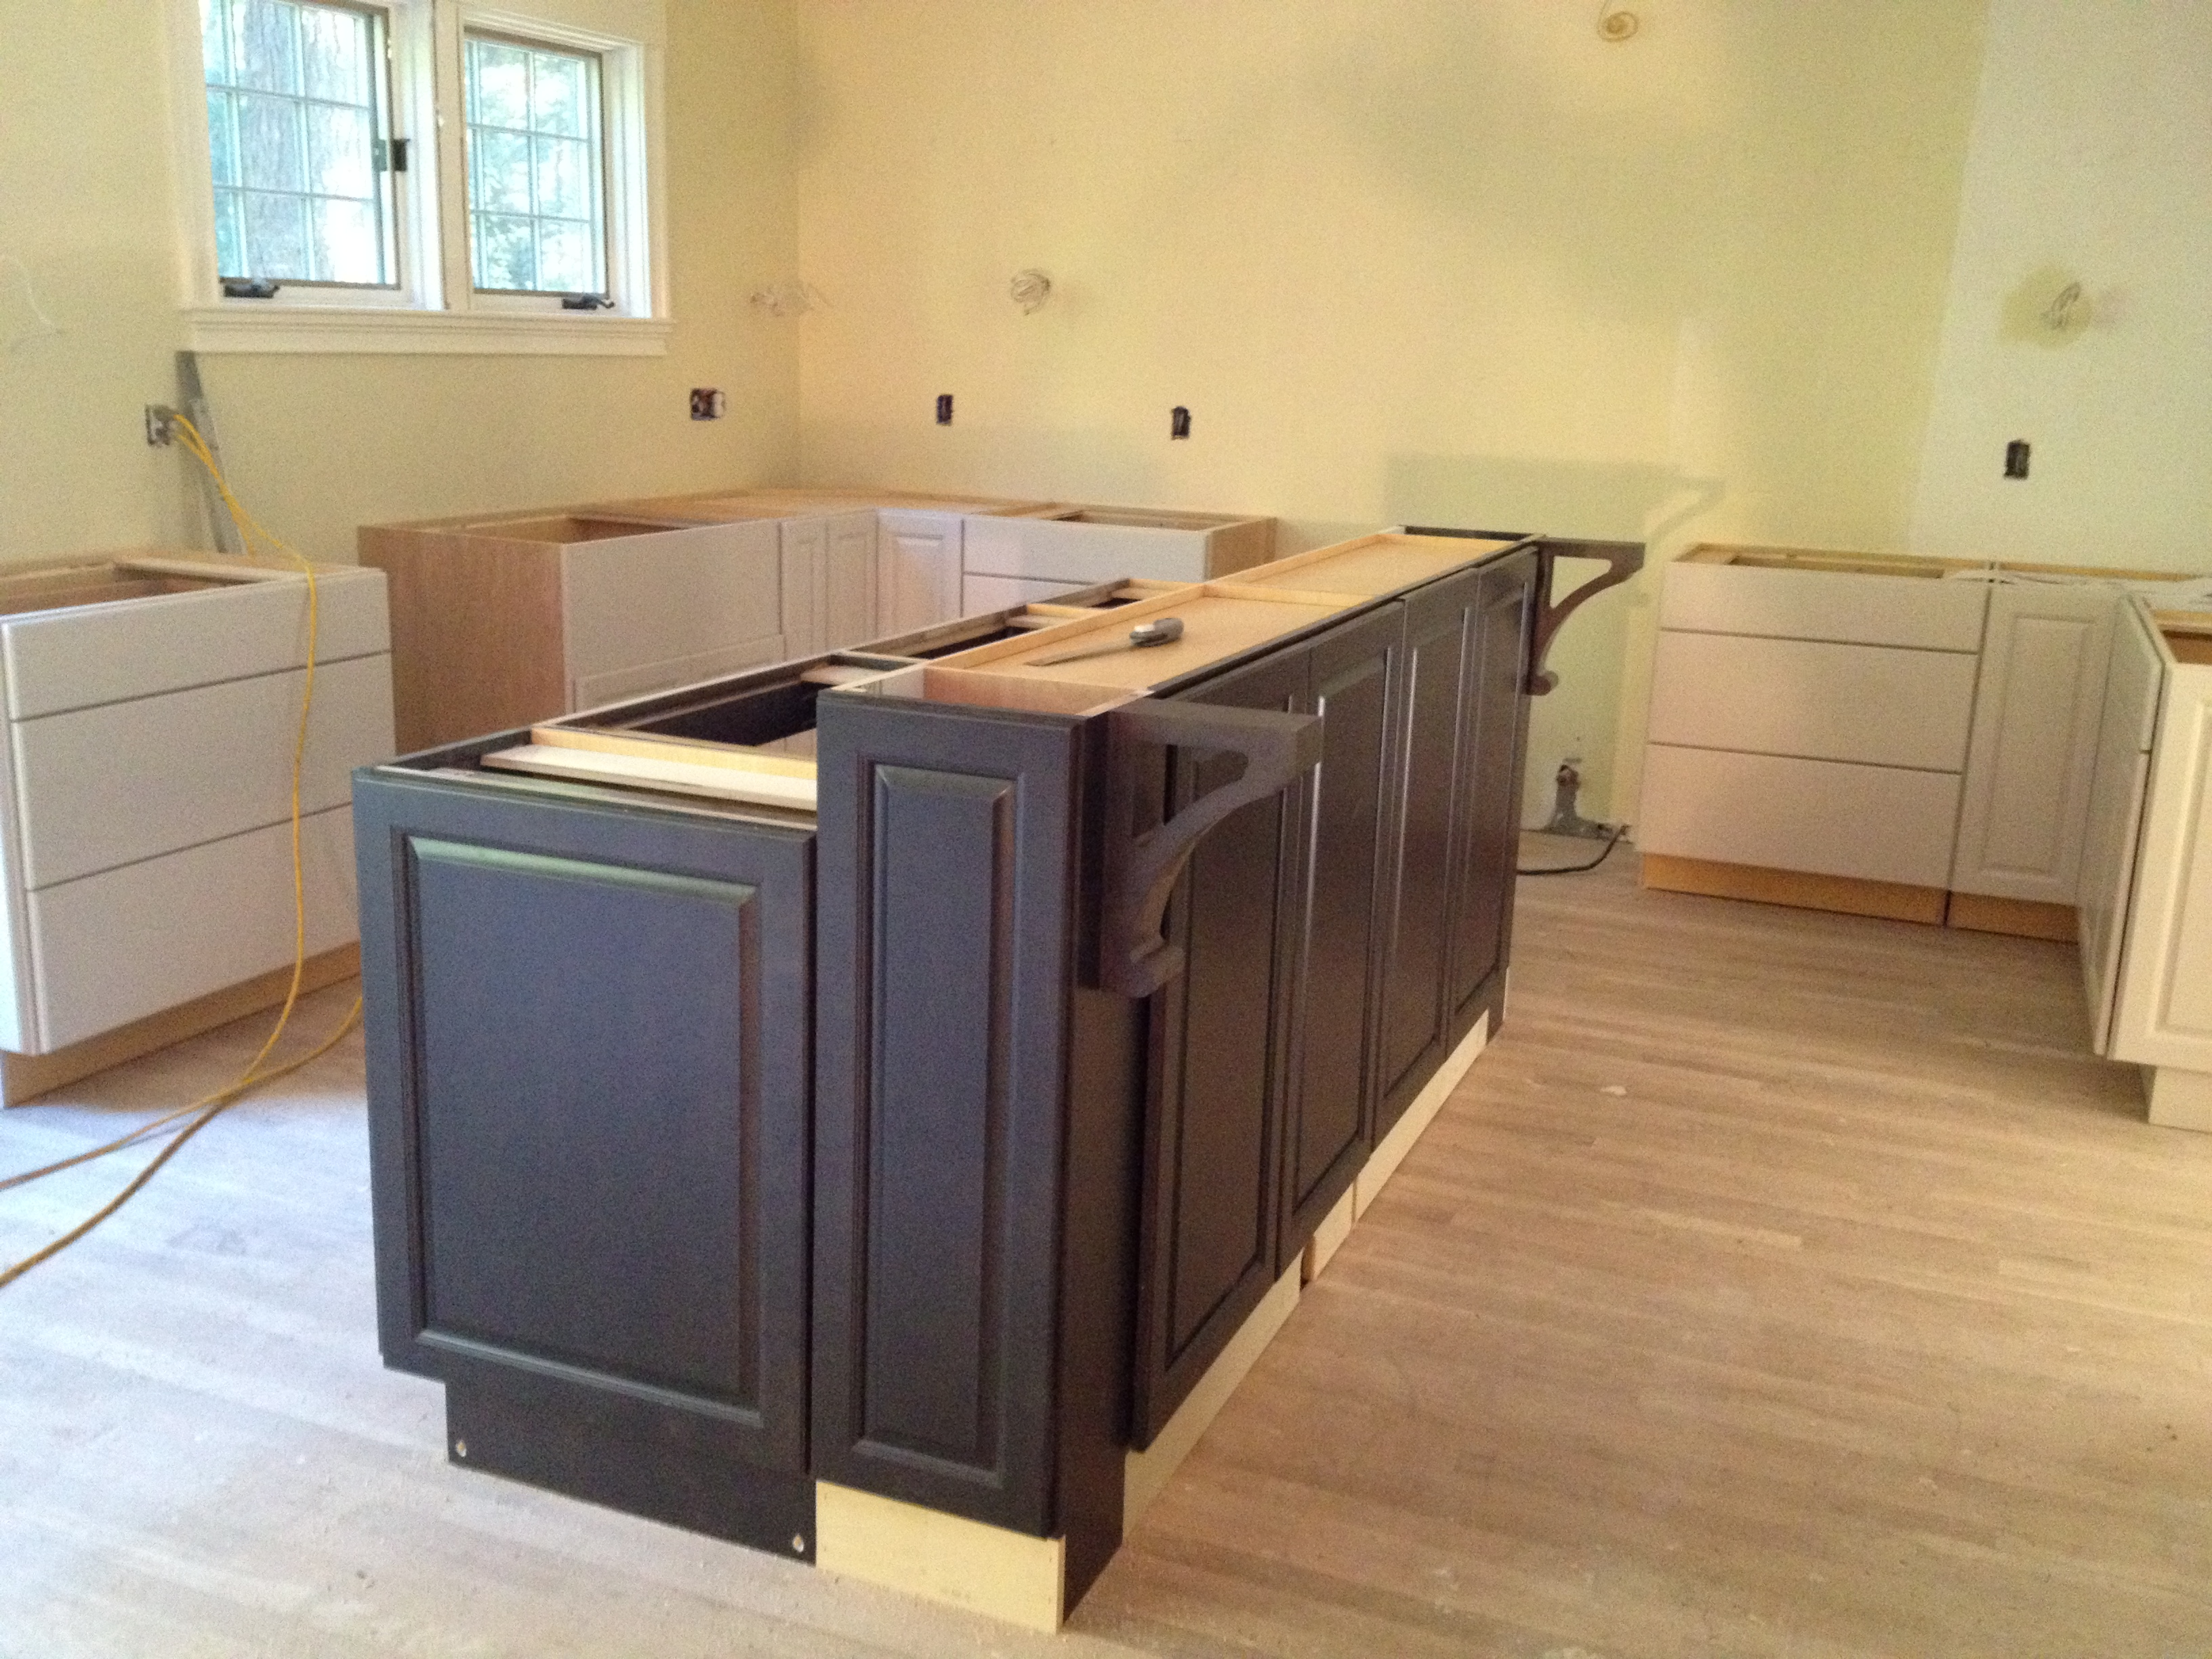 Building a kitchen island with cabinets for Making a kitchen island from cabinets